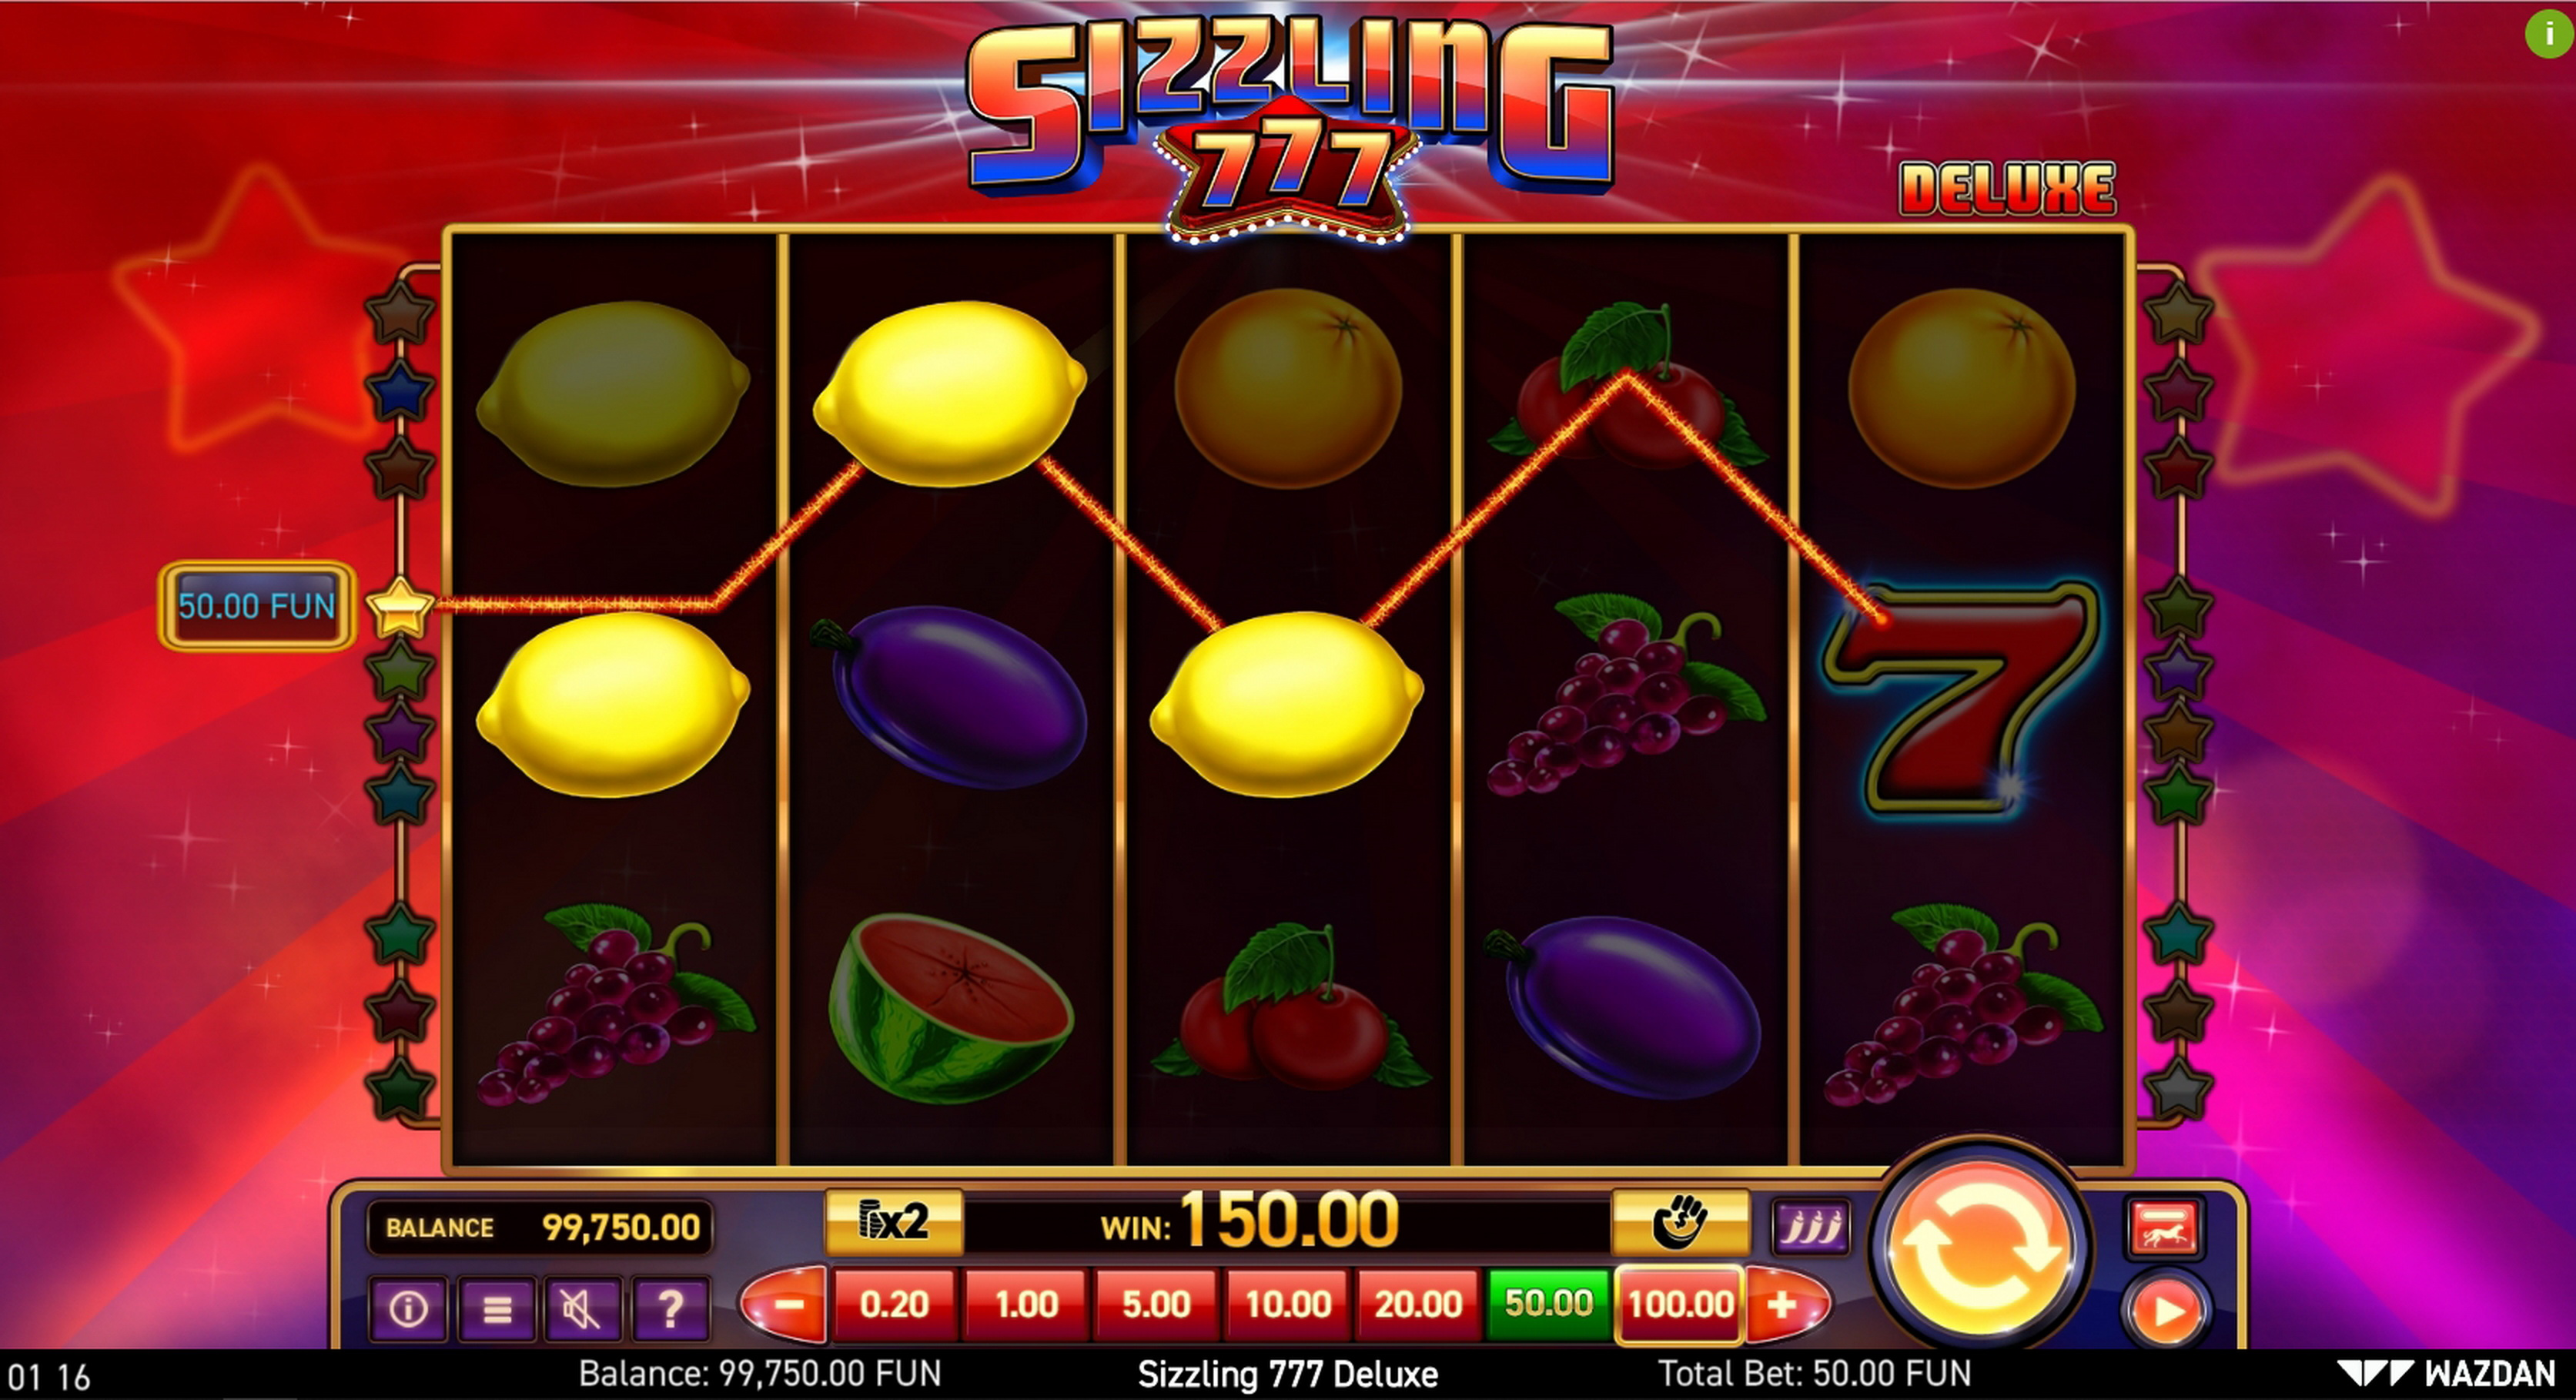 Win Money in Sizzling 777 Deluxe Free Slot Game by Wazdan